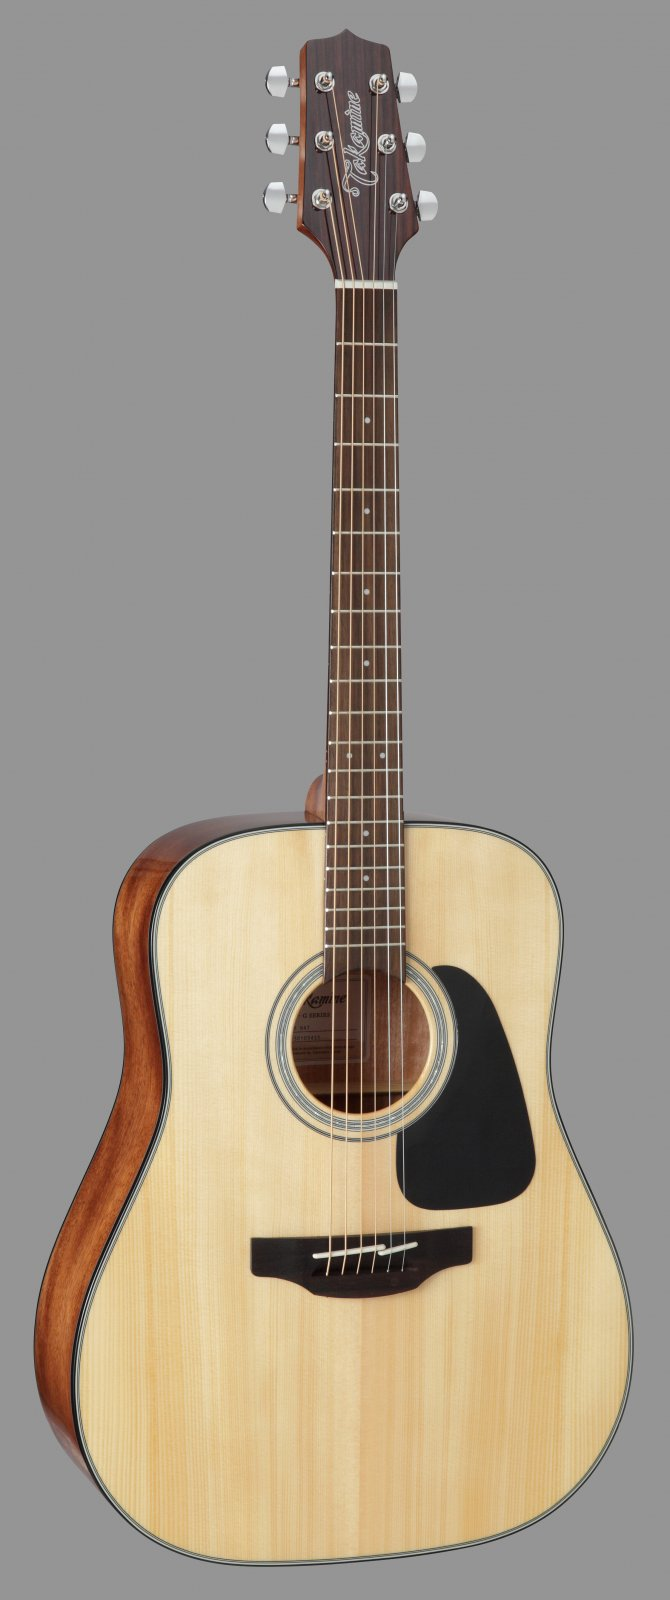 Takamine G series GD30 Acoustic Guitar